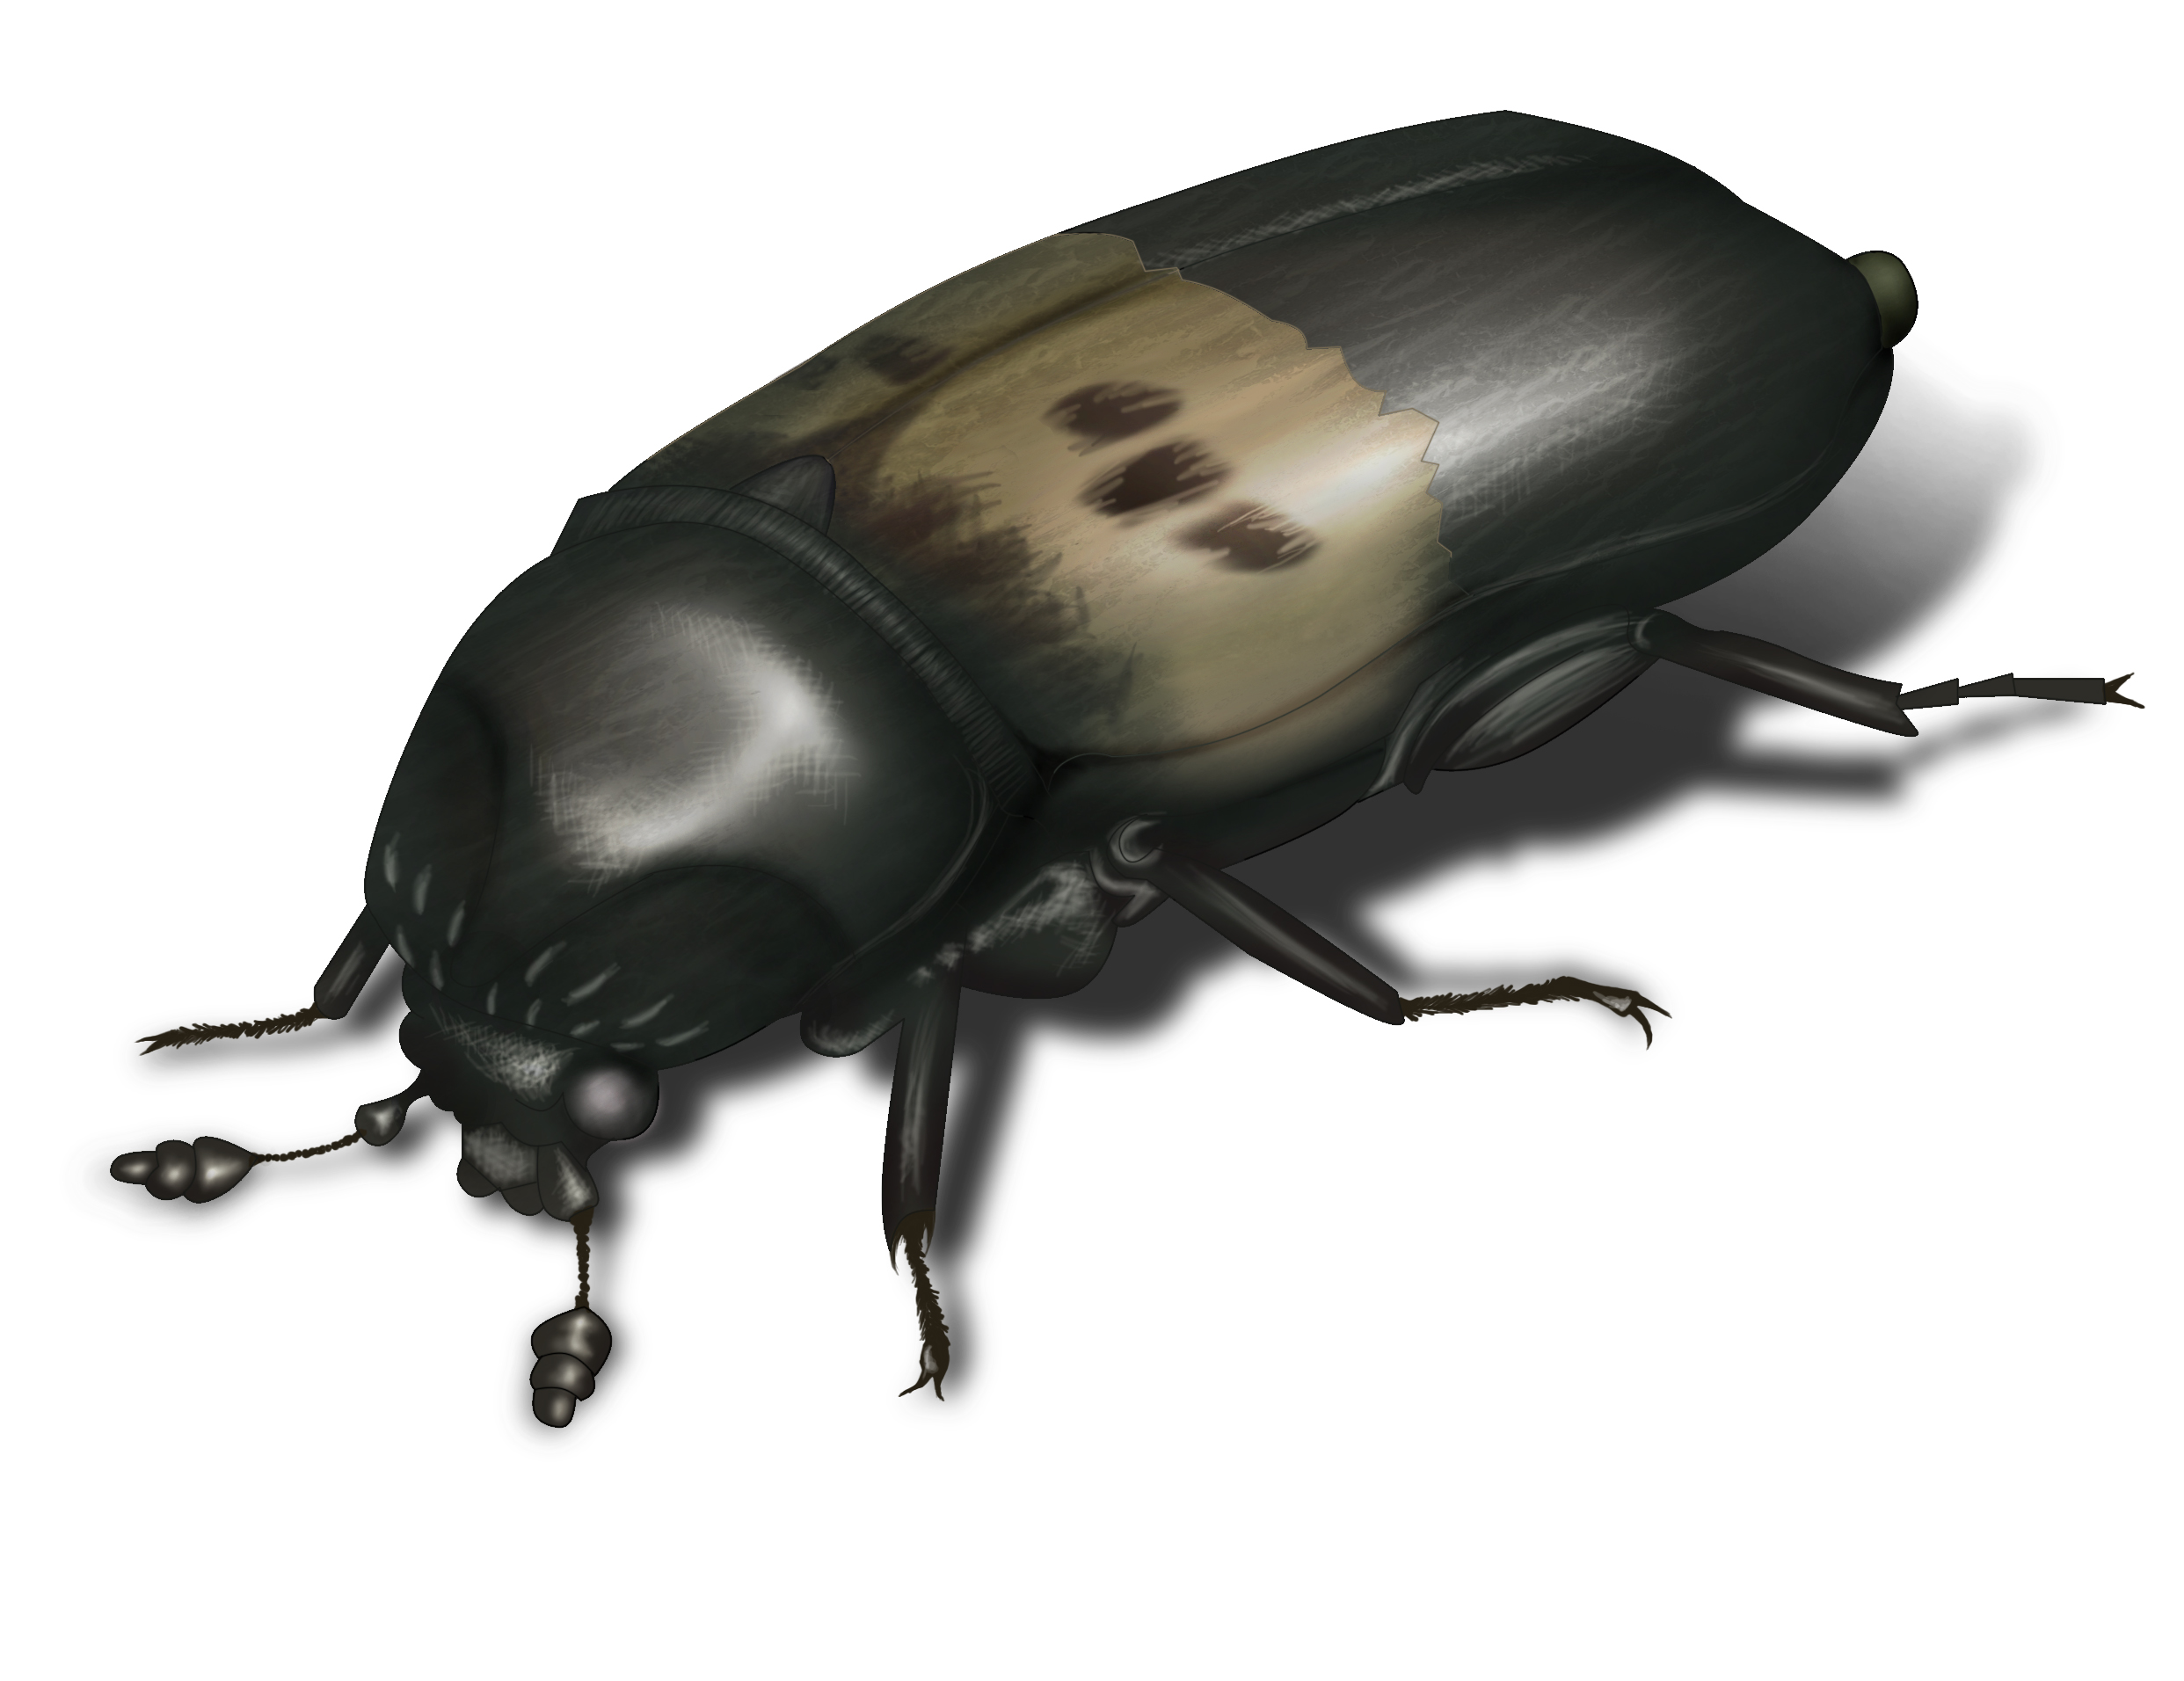 Larder Beetle Illustration. Pictures of Beetles  Beetle Images and Photo Gallery